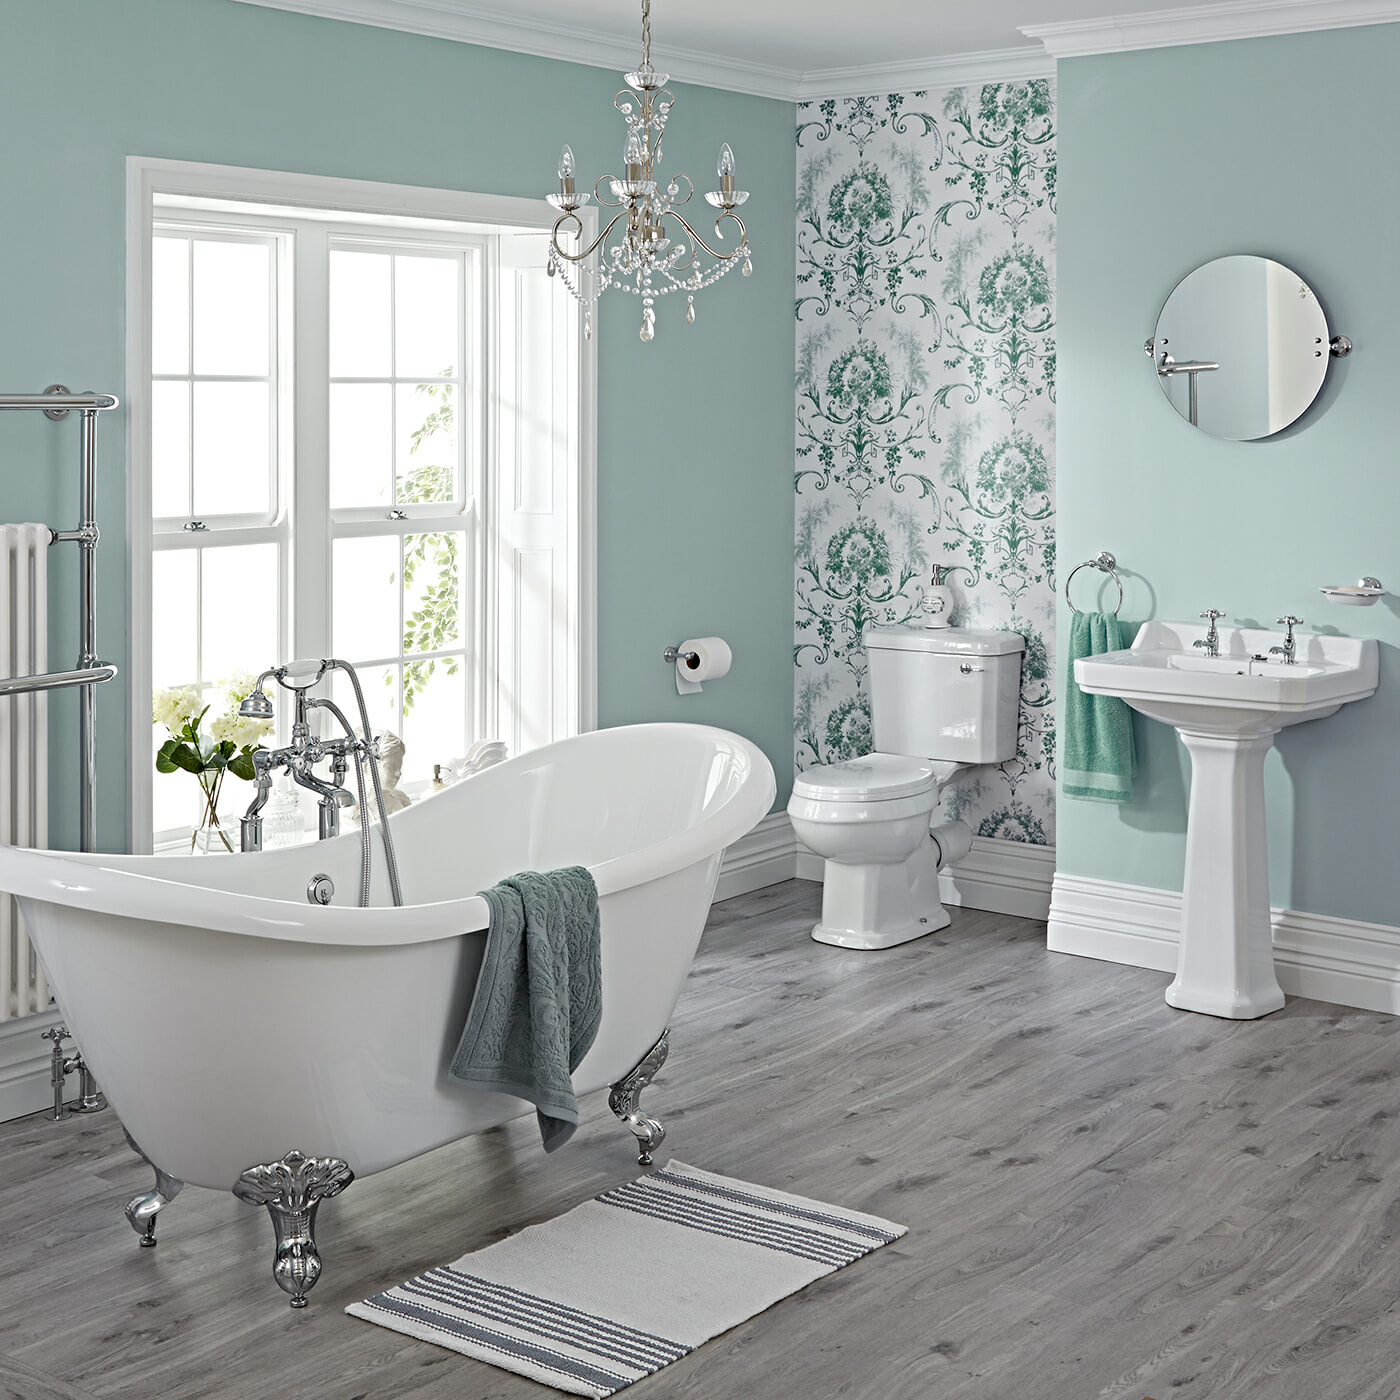 Bathroom Decor Ideas That Make A Statement Big Bathroom Shop